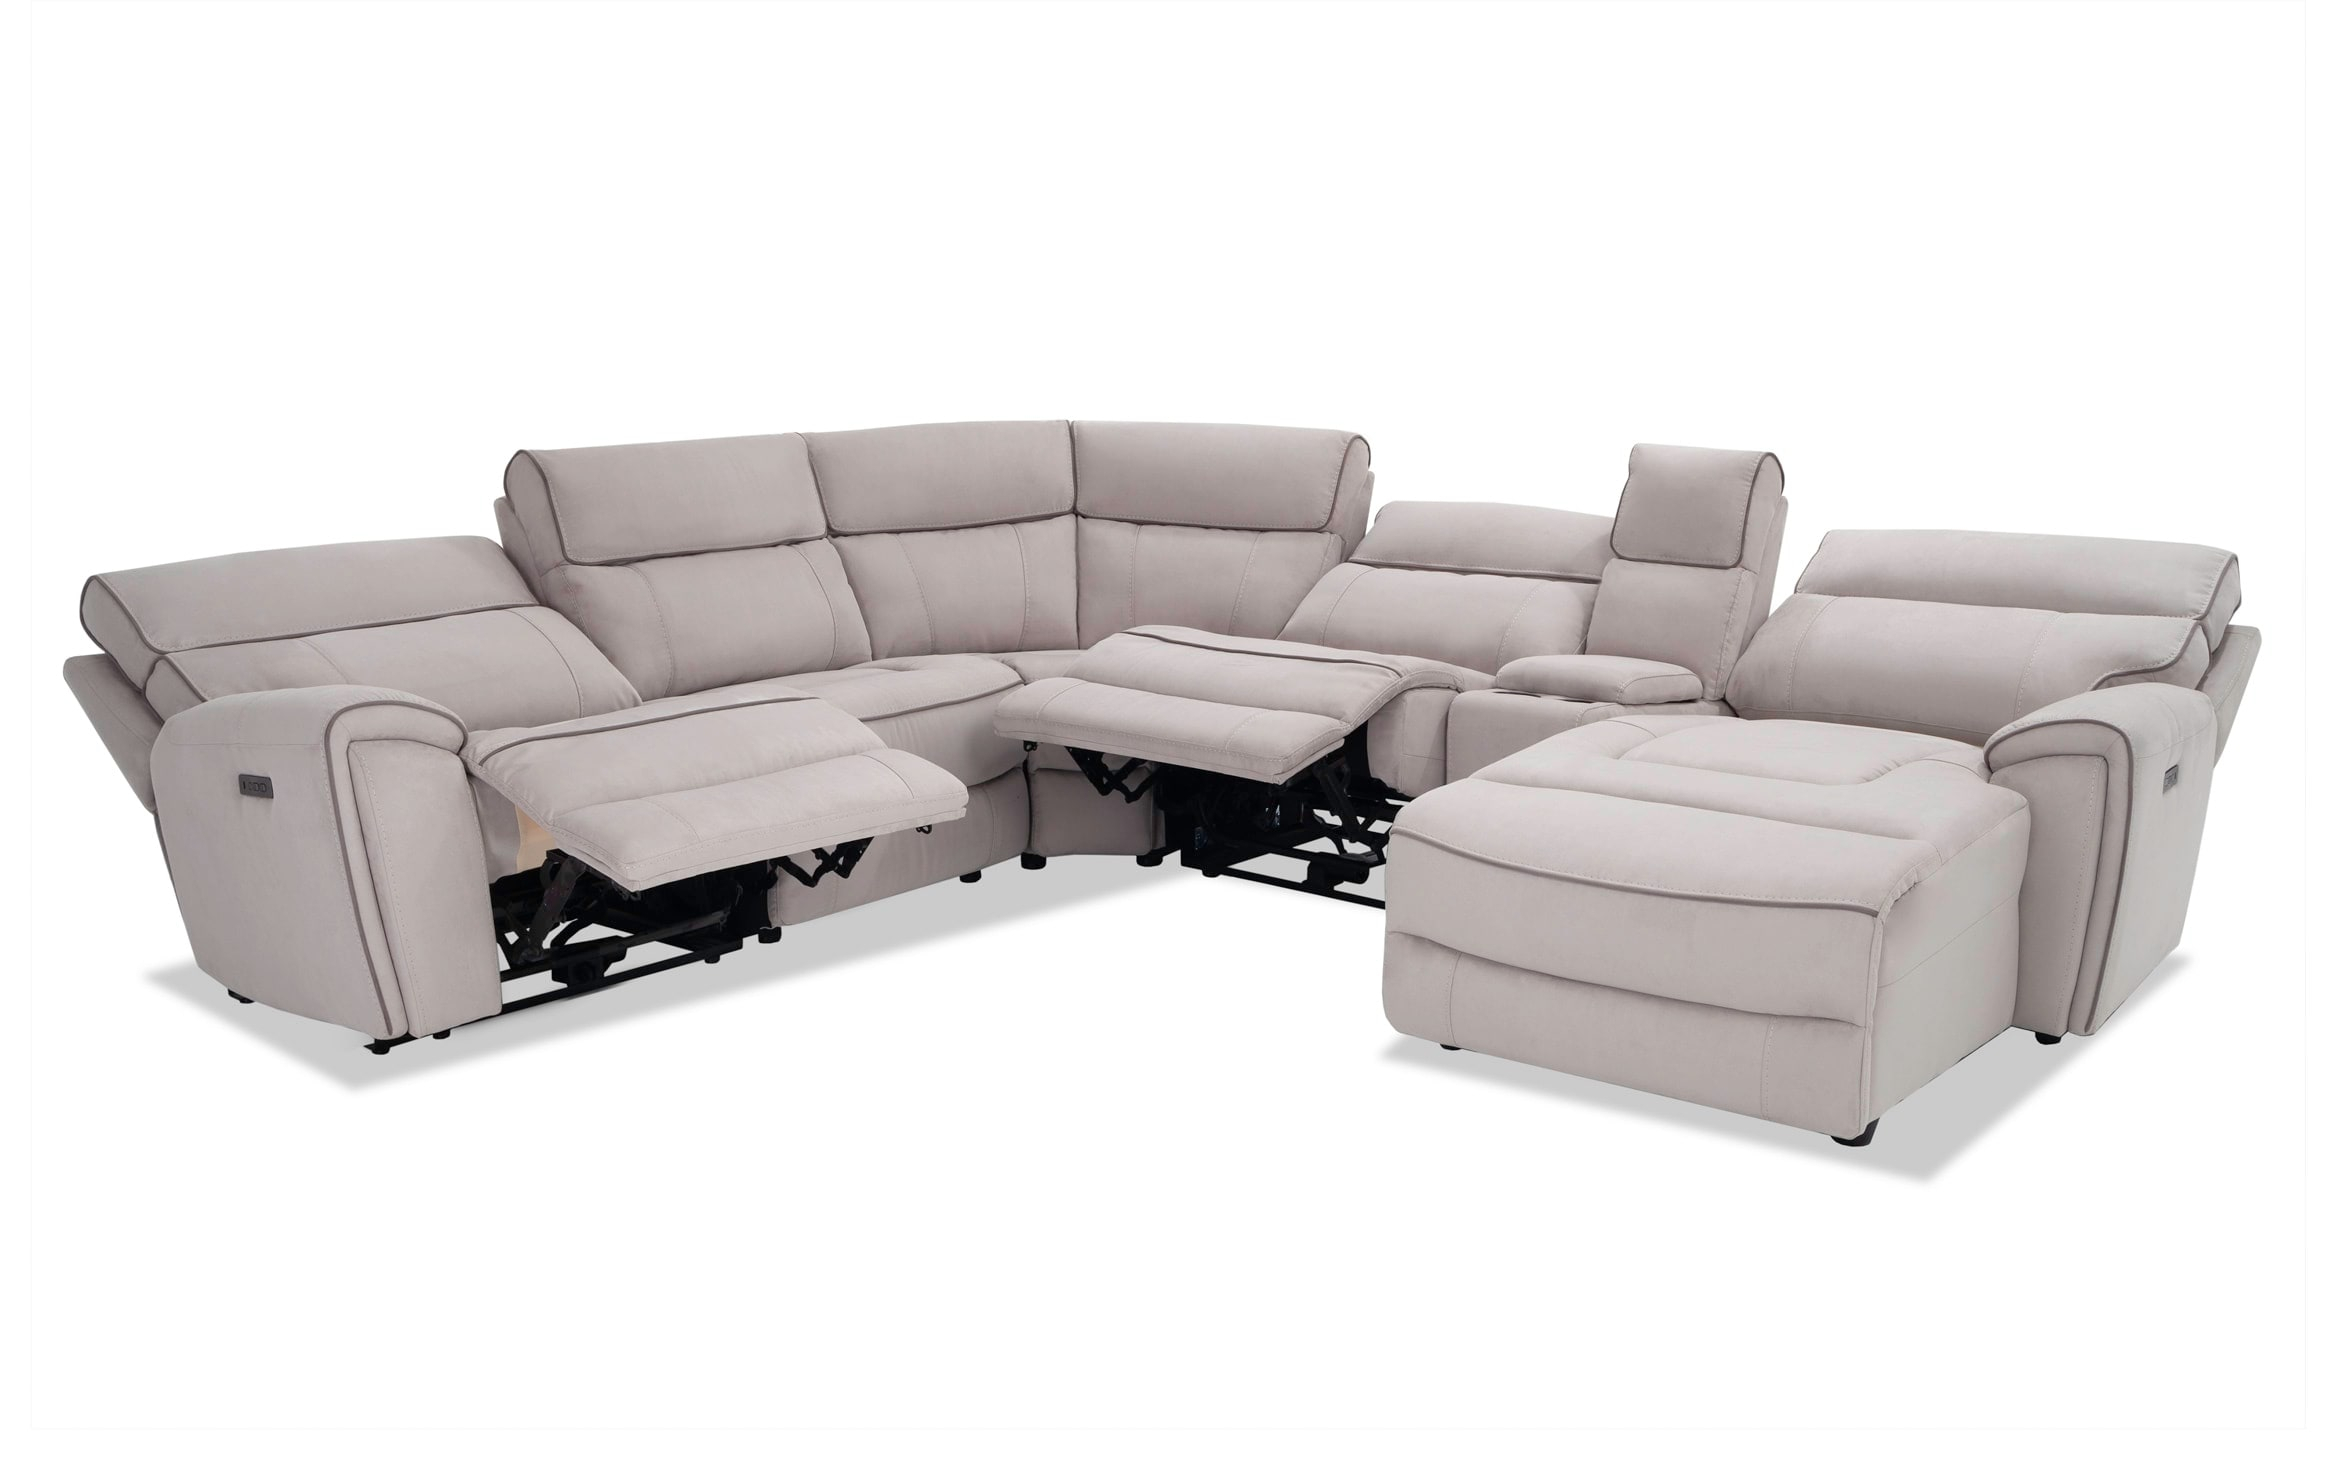 Contempo 6 Piece Power Reclining Left Arm Facing Sectional Regarding Contempo Power Reclining Sofas (View 5 of 15)